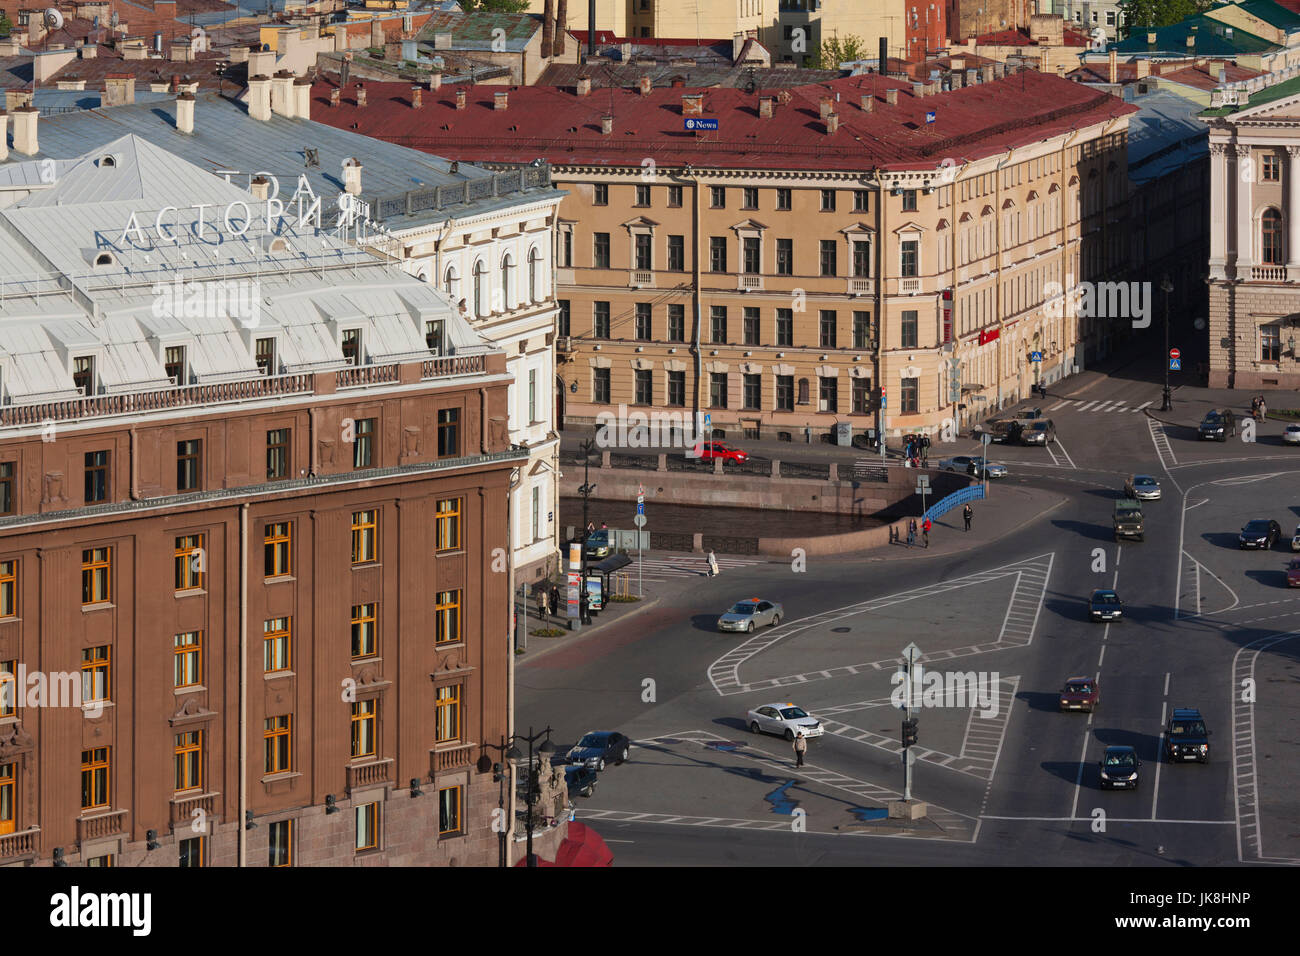 Russia, Saint Petersburg, Center, elevated view of the Astoria Hotel from St. Isaac Cathedral - Stock Image